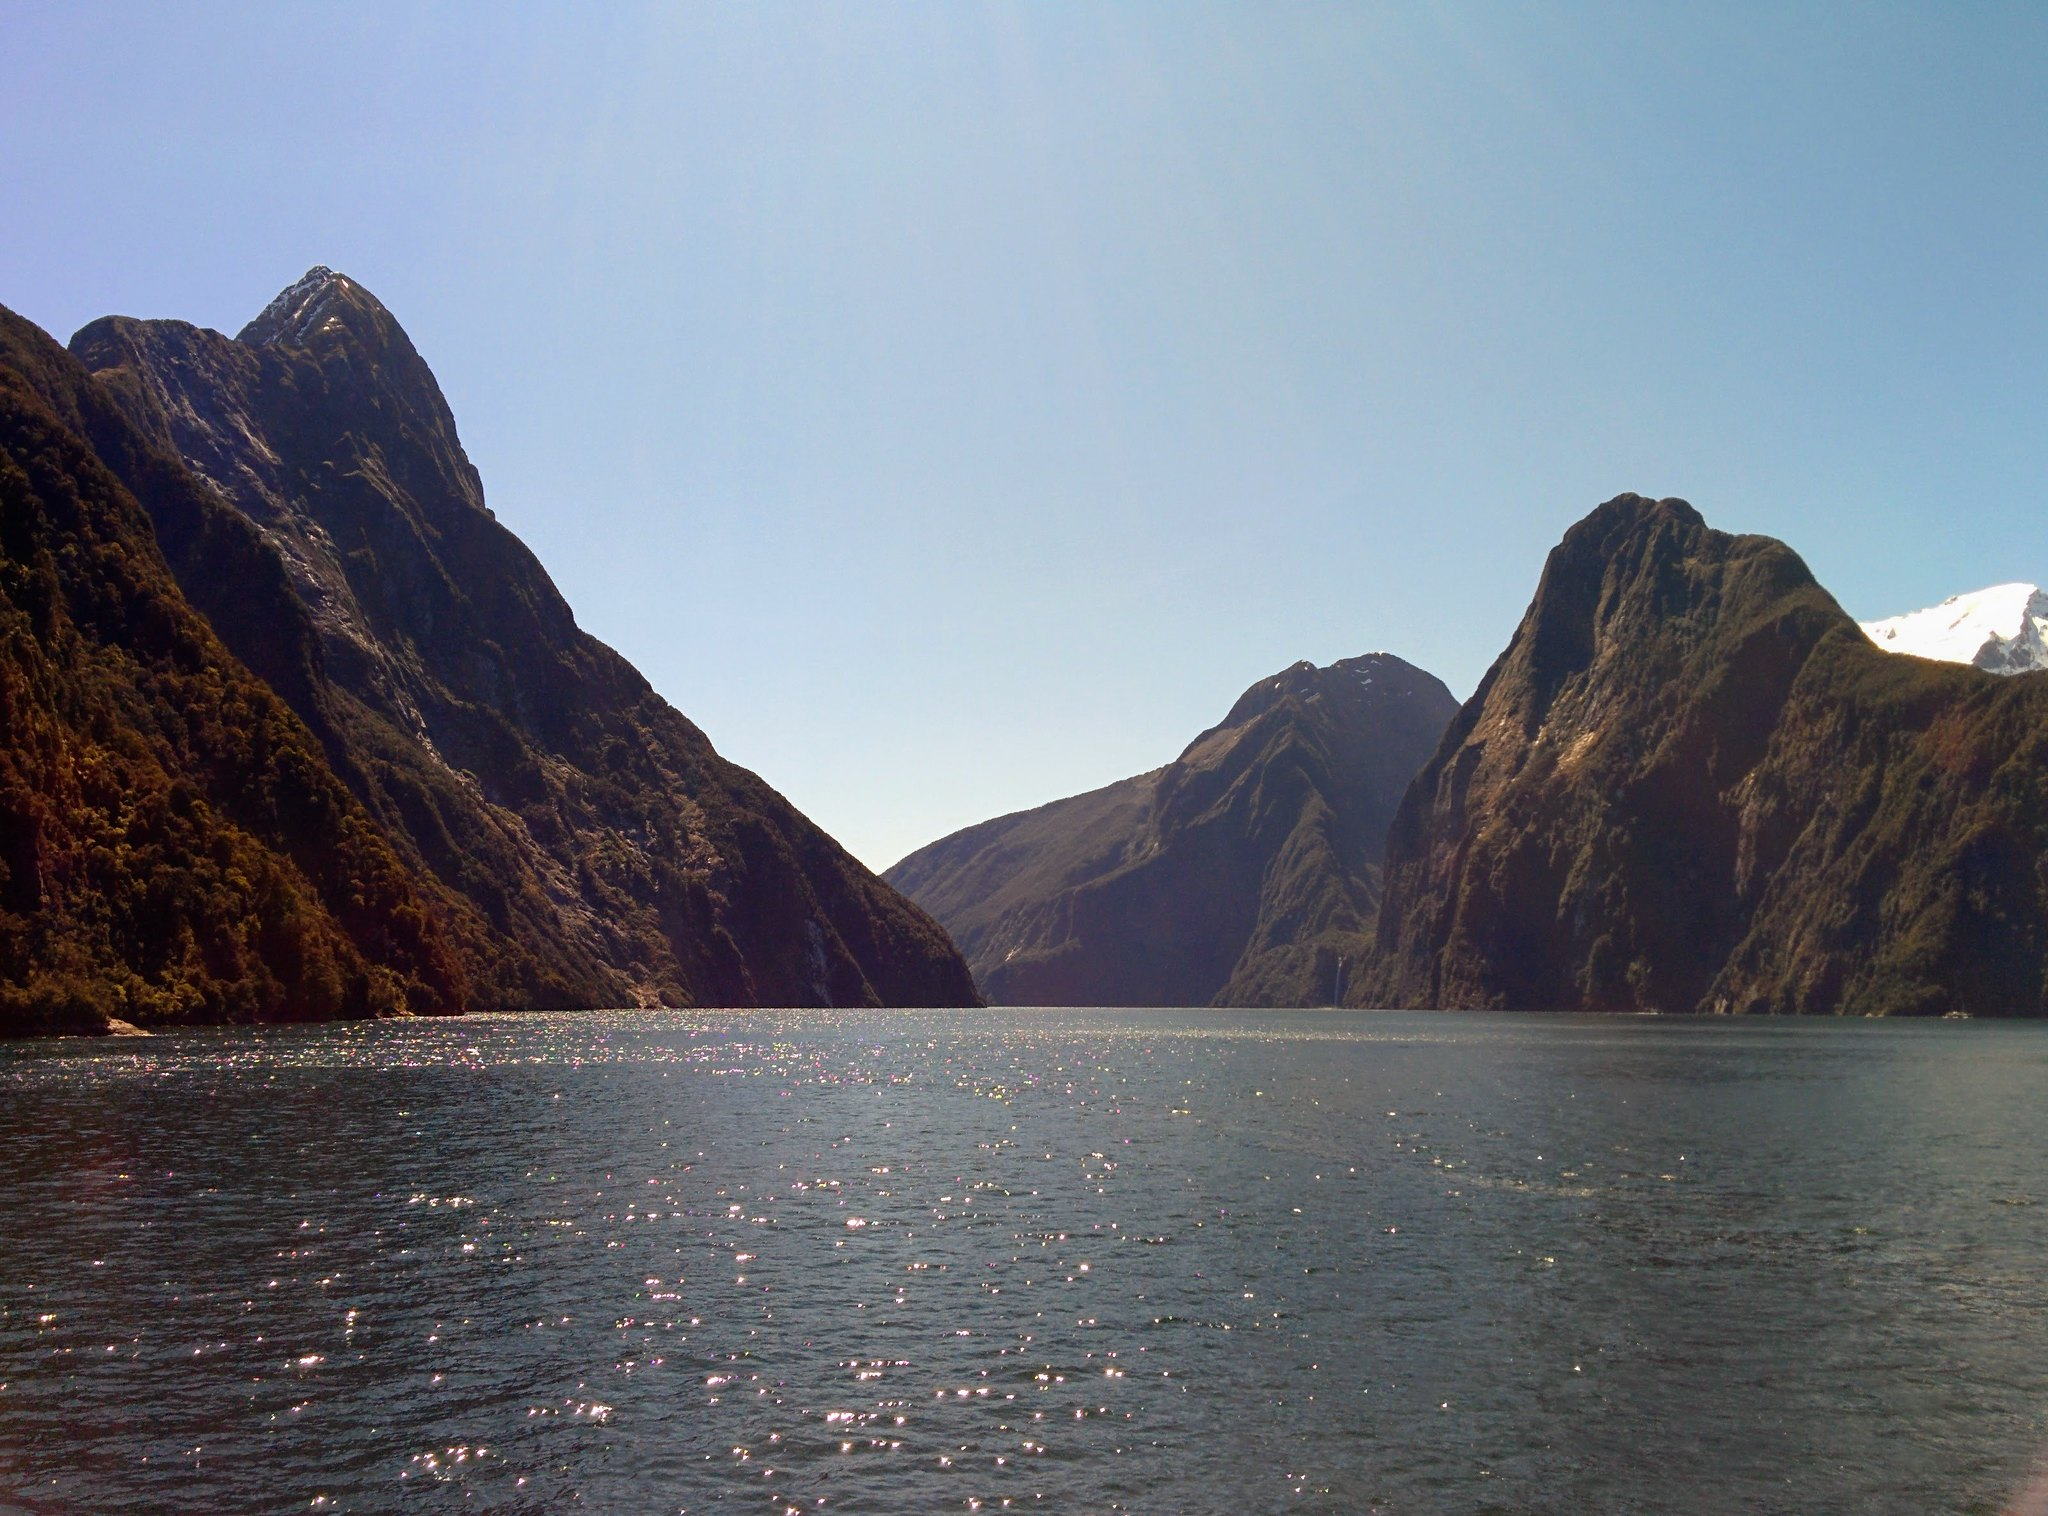 Milford Sound from the ferry